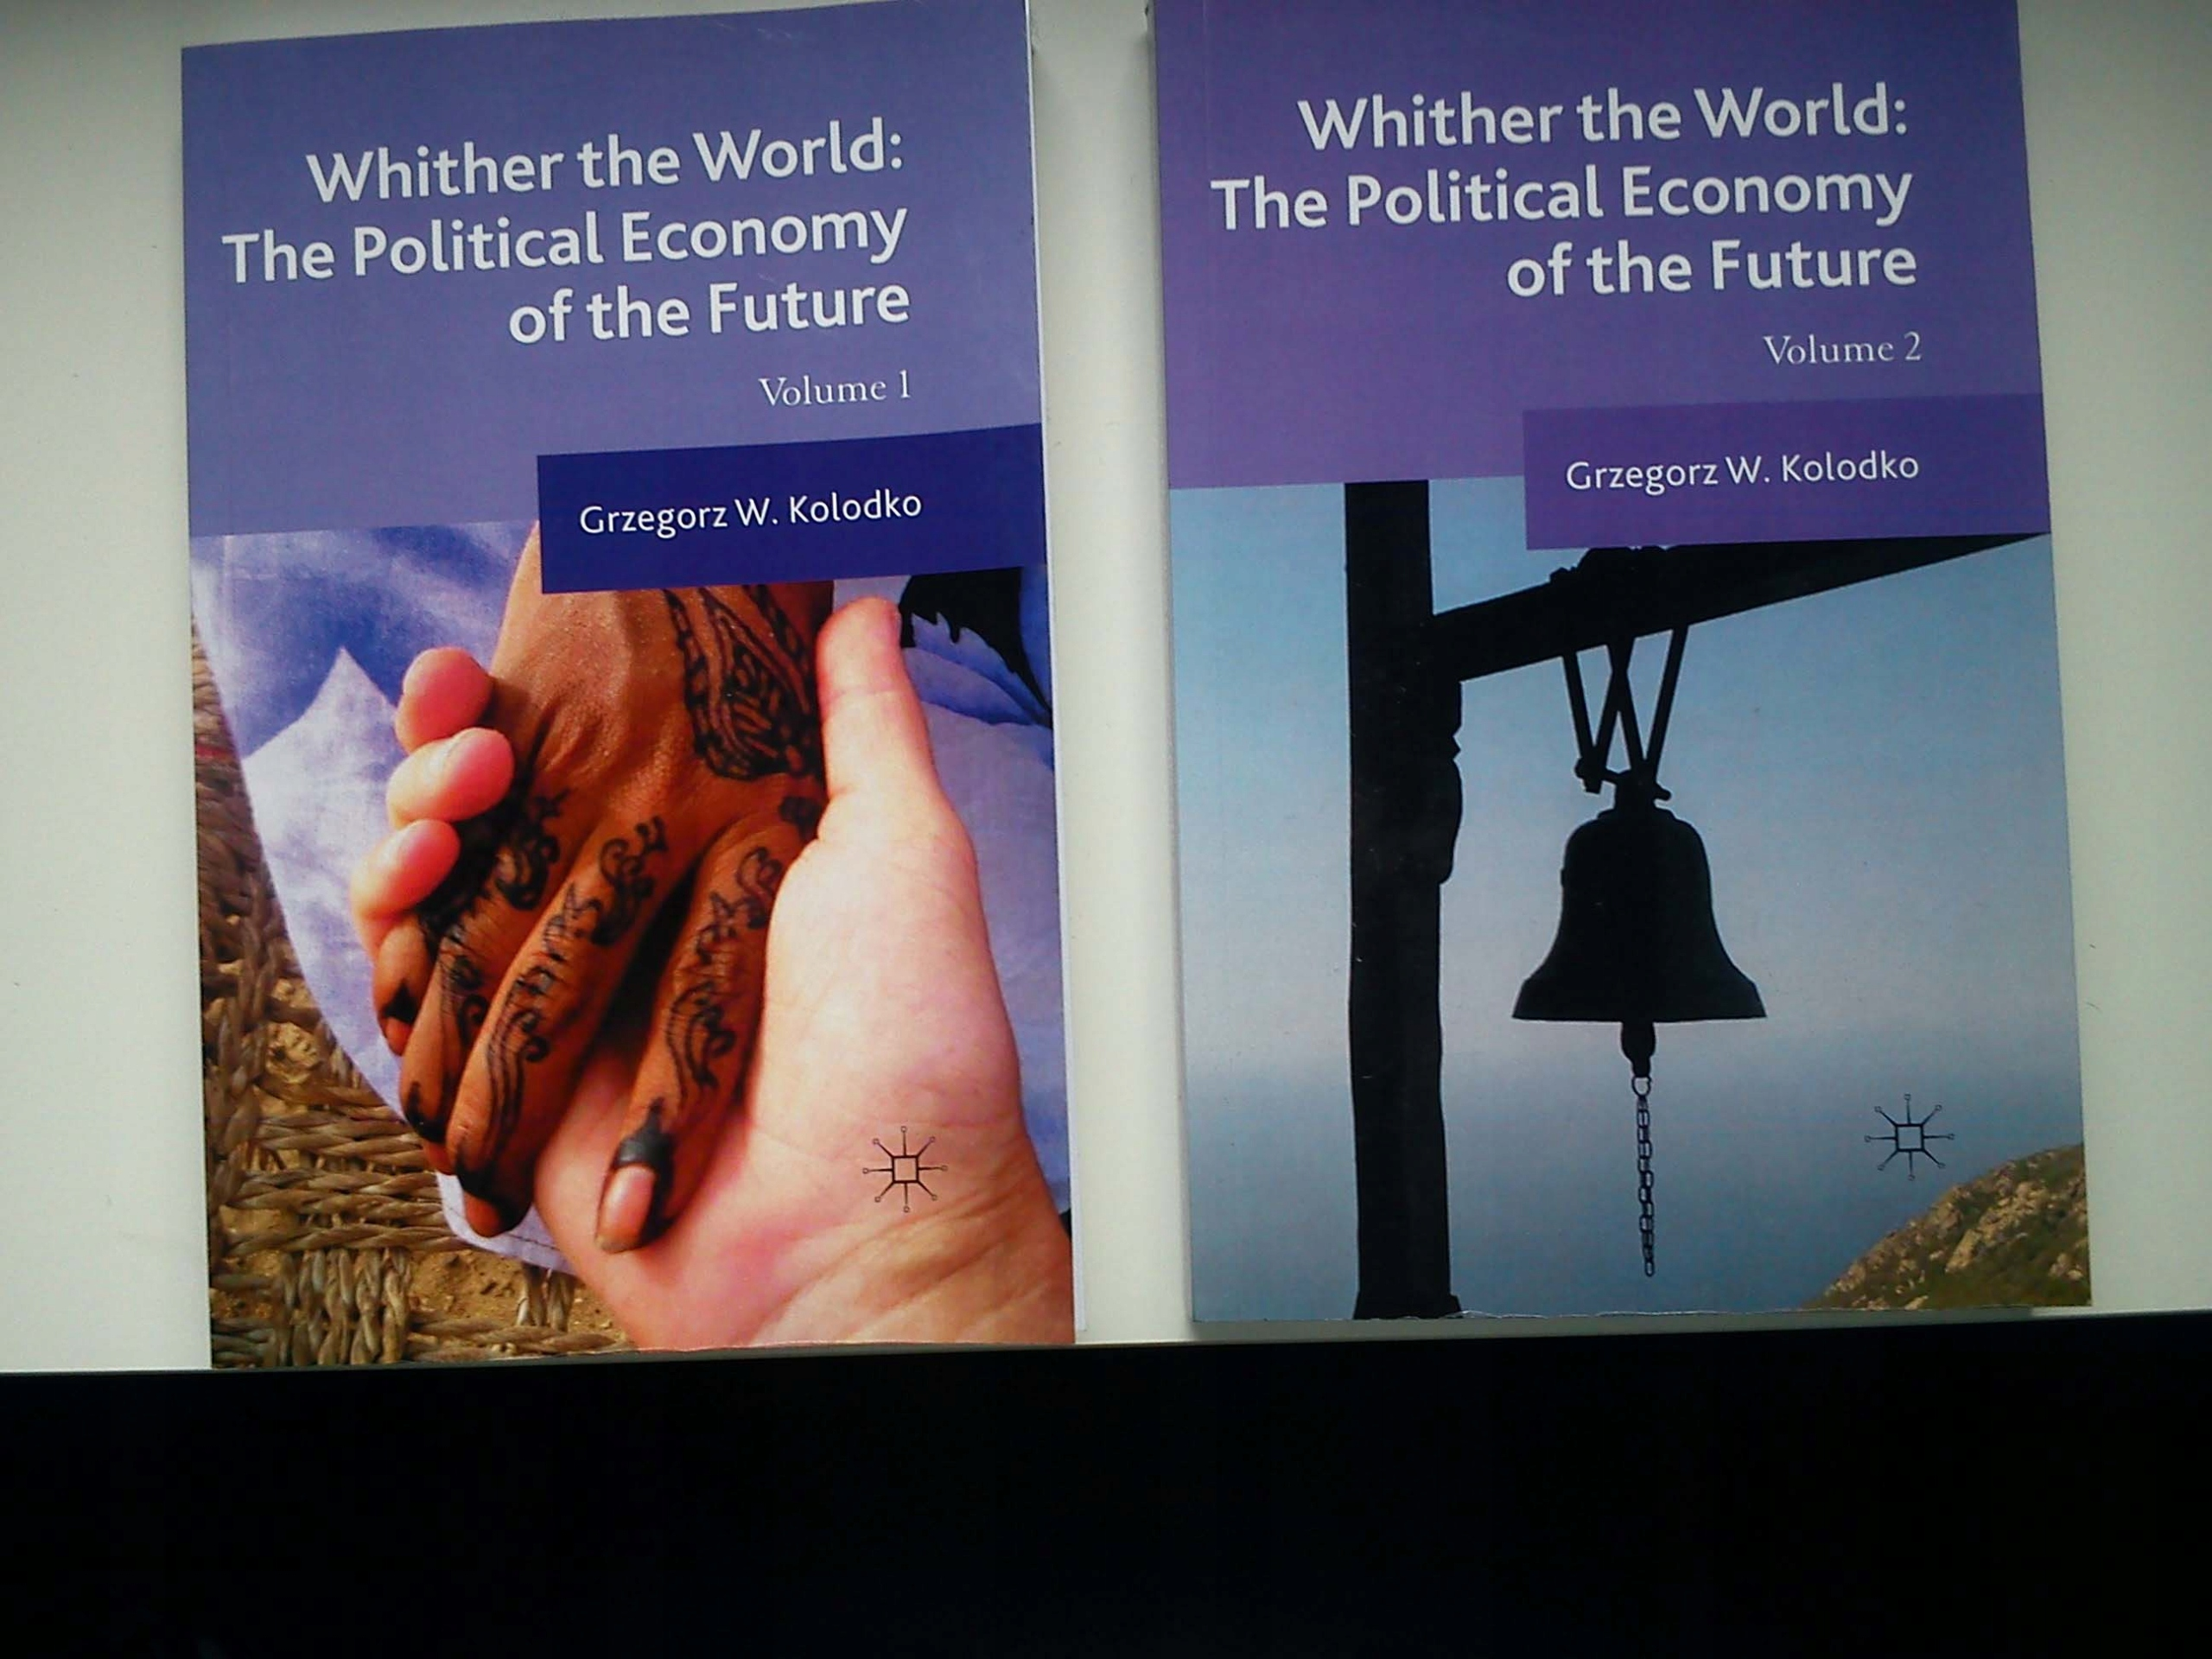 Whither the World: The Political Economy of the Future, Volume 1